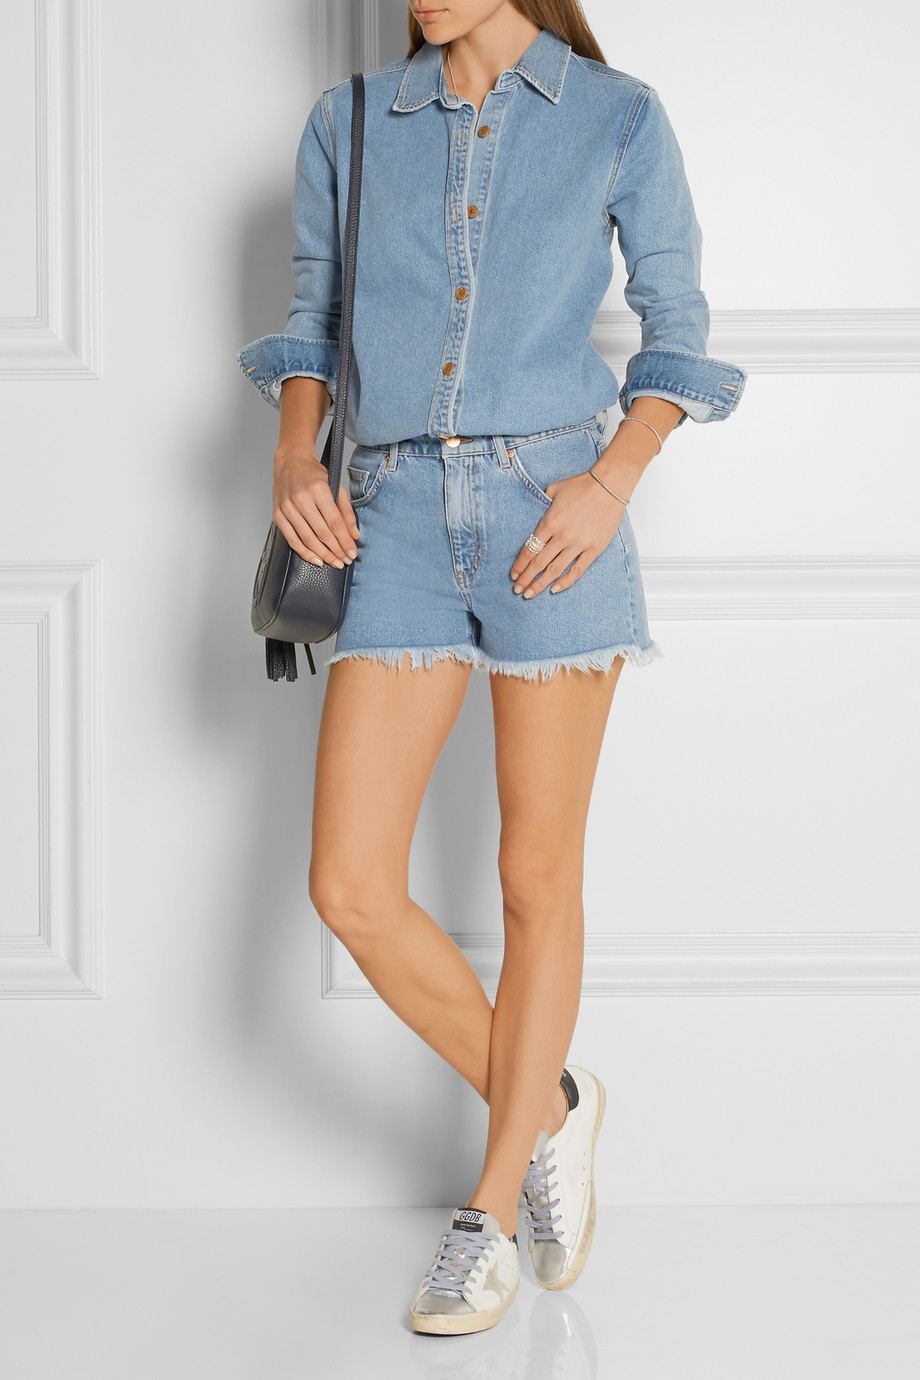 Come indossare un perfetto look total denim